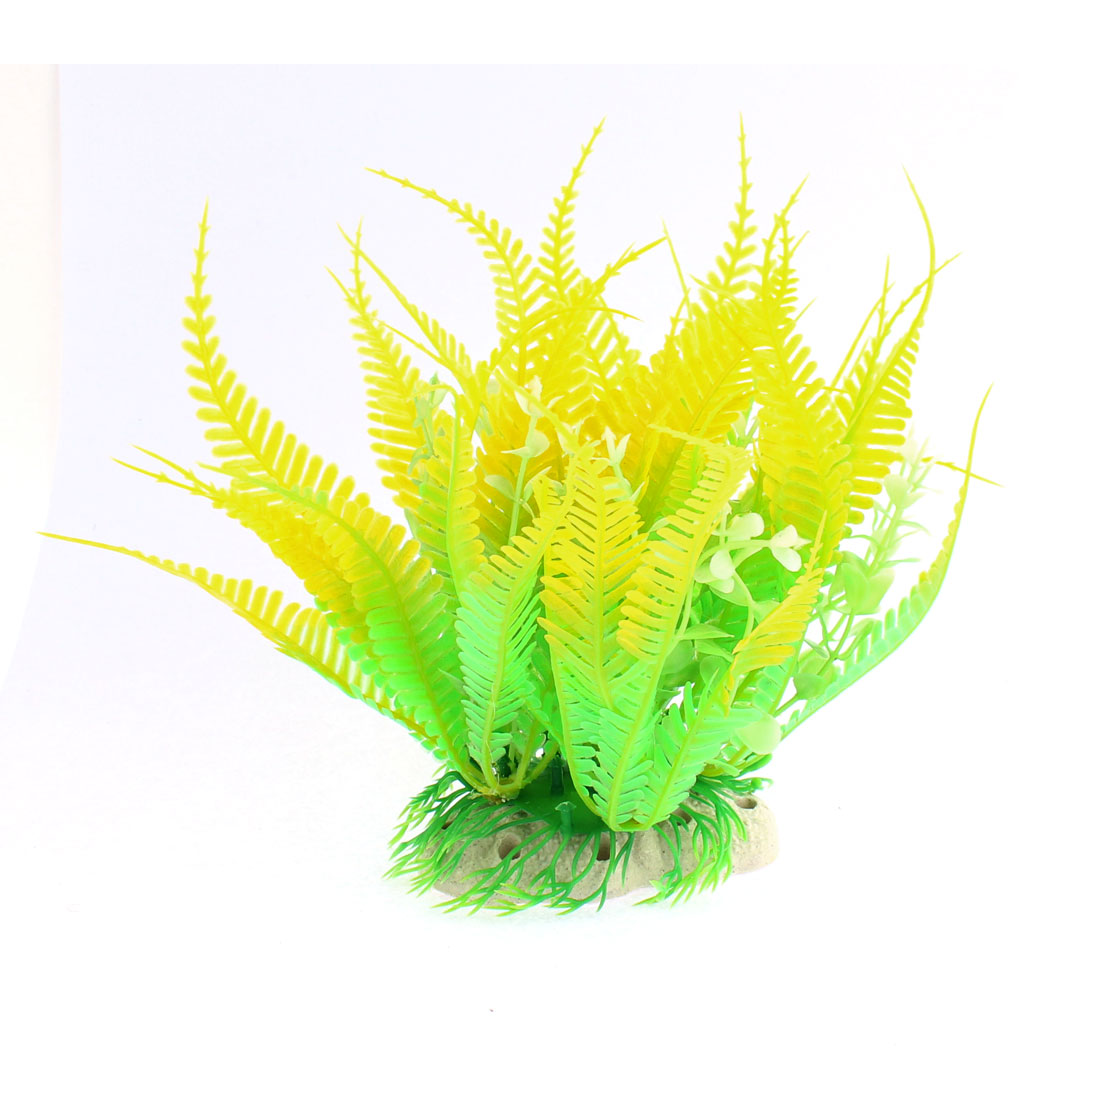 Aquarium Ceramic Base Plastic Simulation Water Plant Grass Ornament Yellow Green